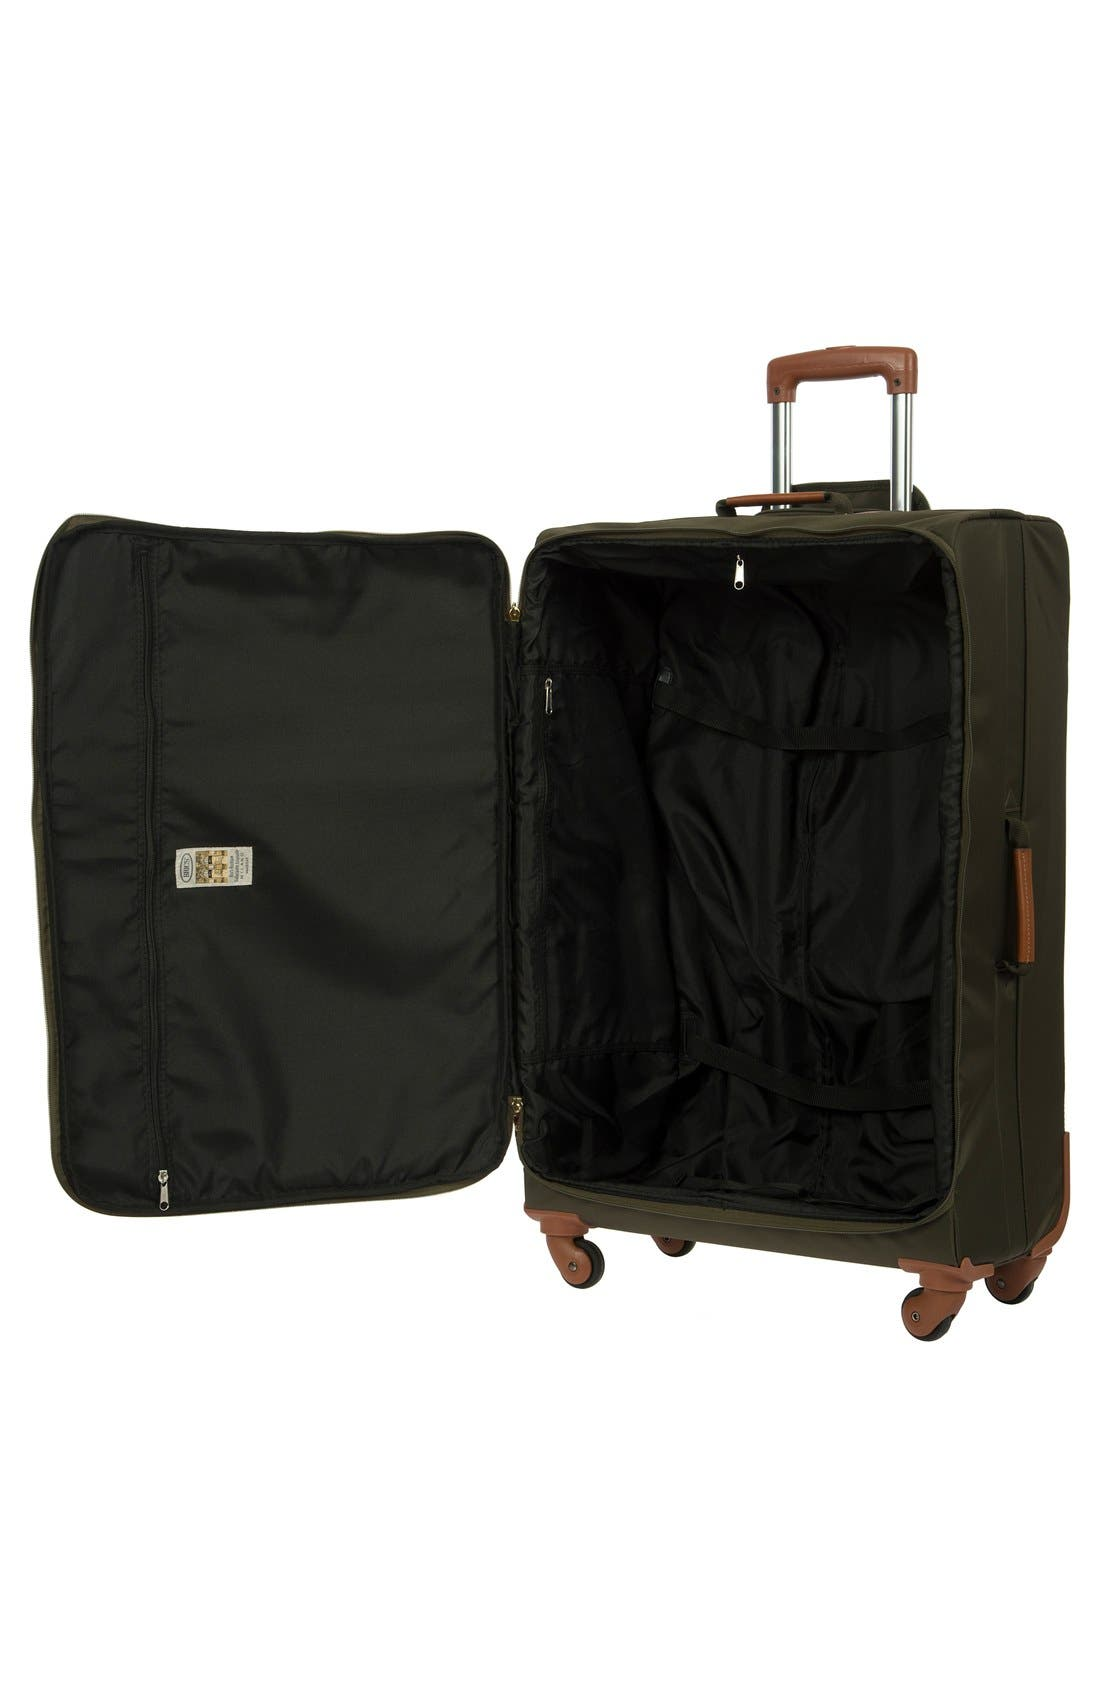 X-Bag 30-Inch Spinner Suitcase,                             Alternate thumbnail 11, color,                             OLIVE